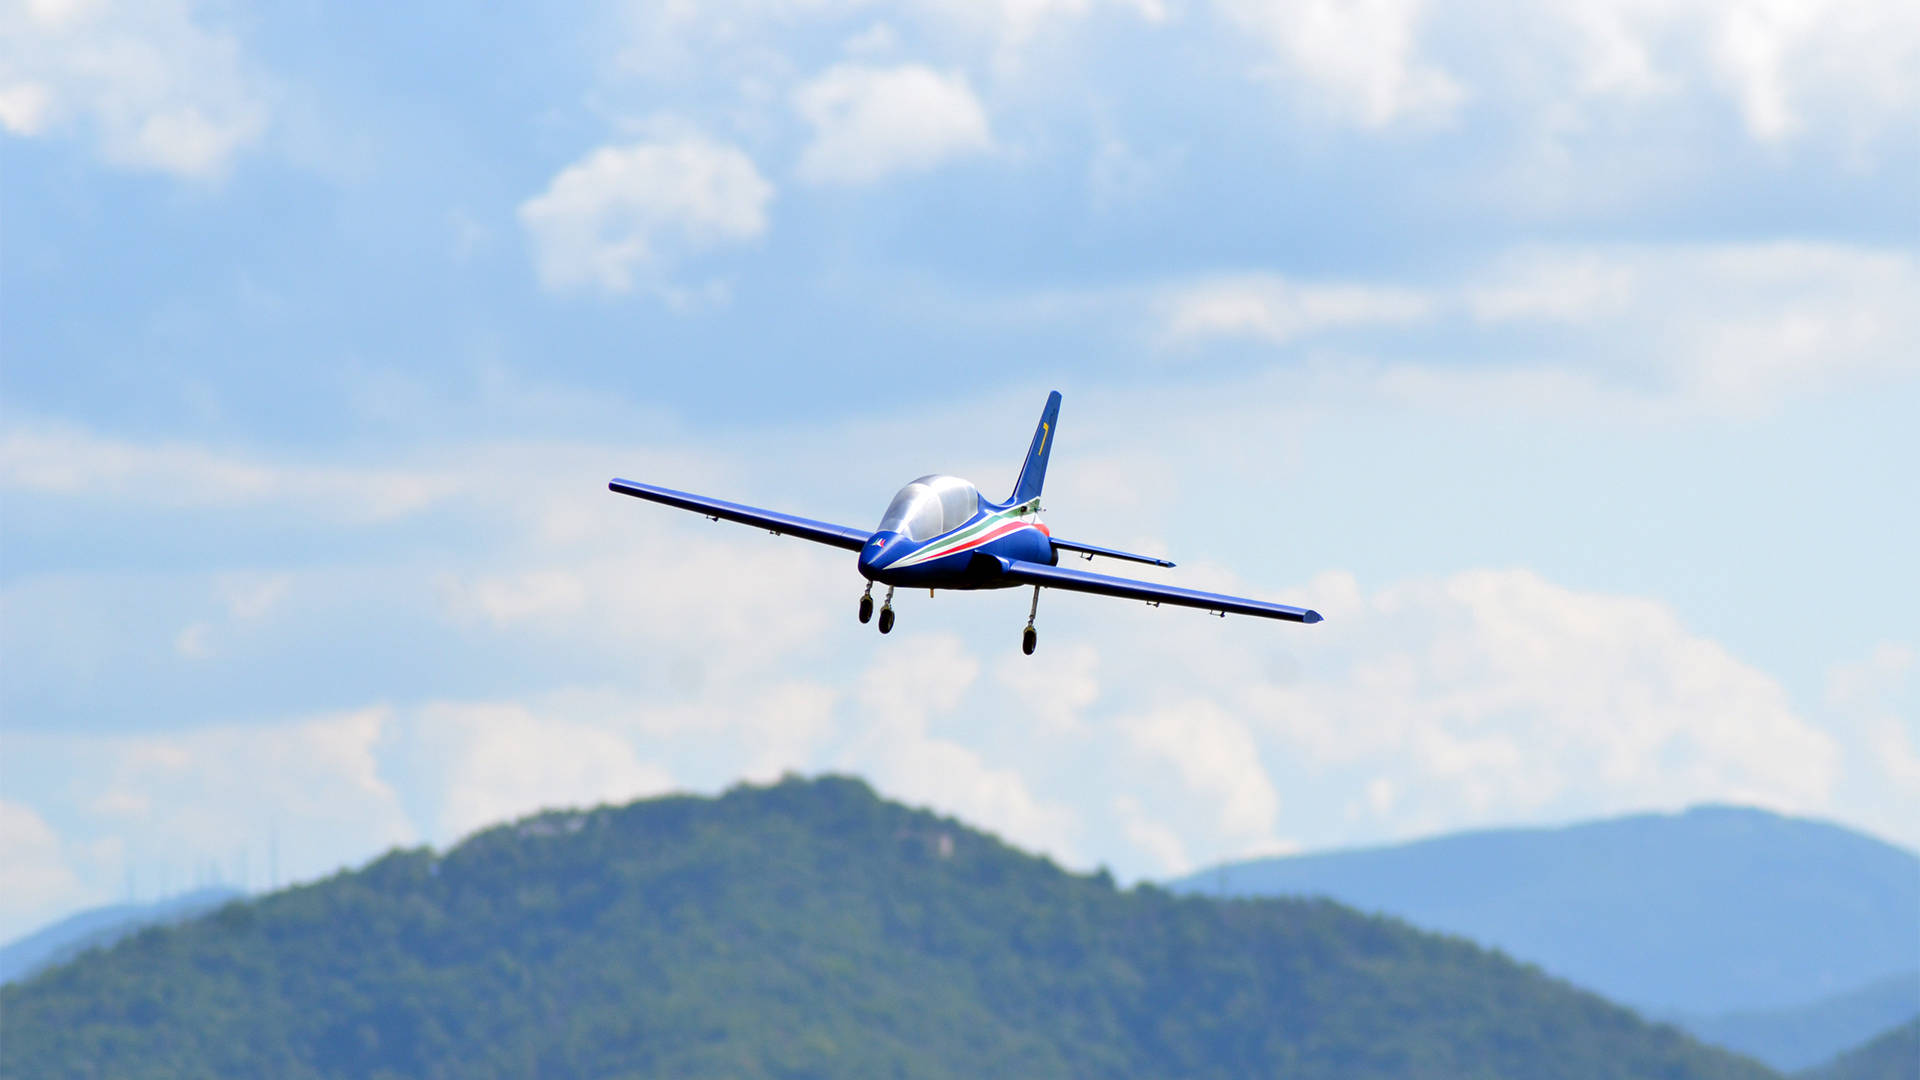 Passione 3d flying MB339 RC aircraft ducted fan website creation